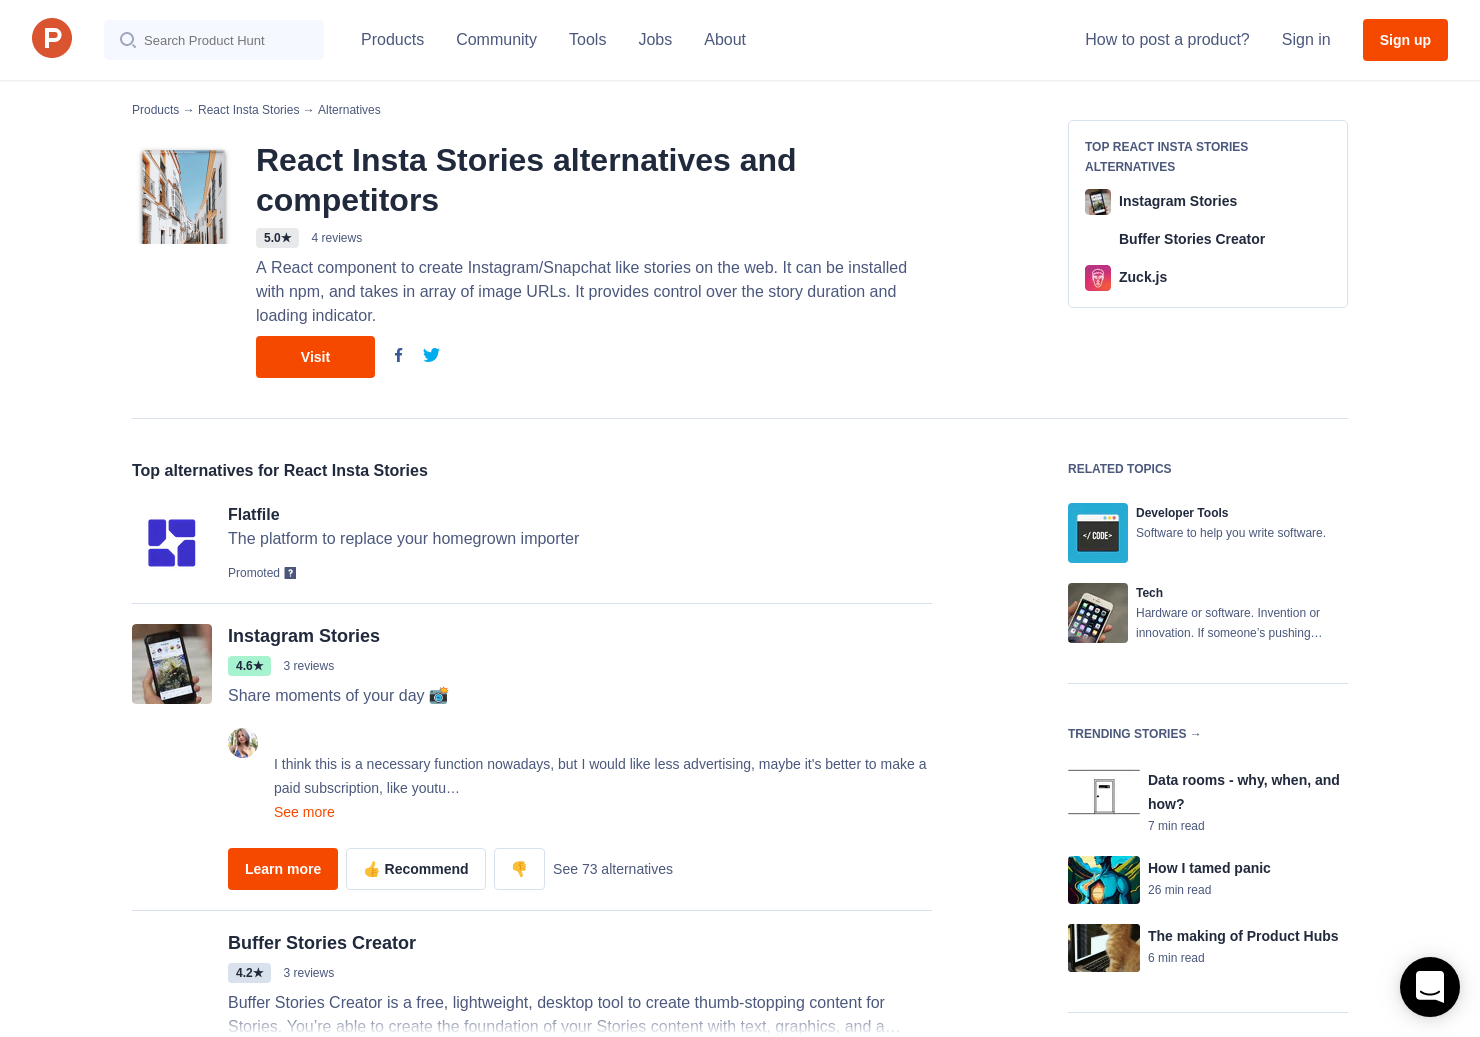 7 Alternatives to React Insta Stories | Product Hunt